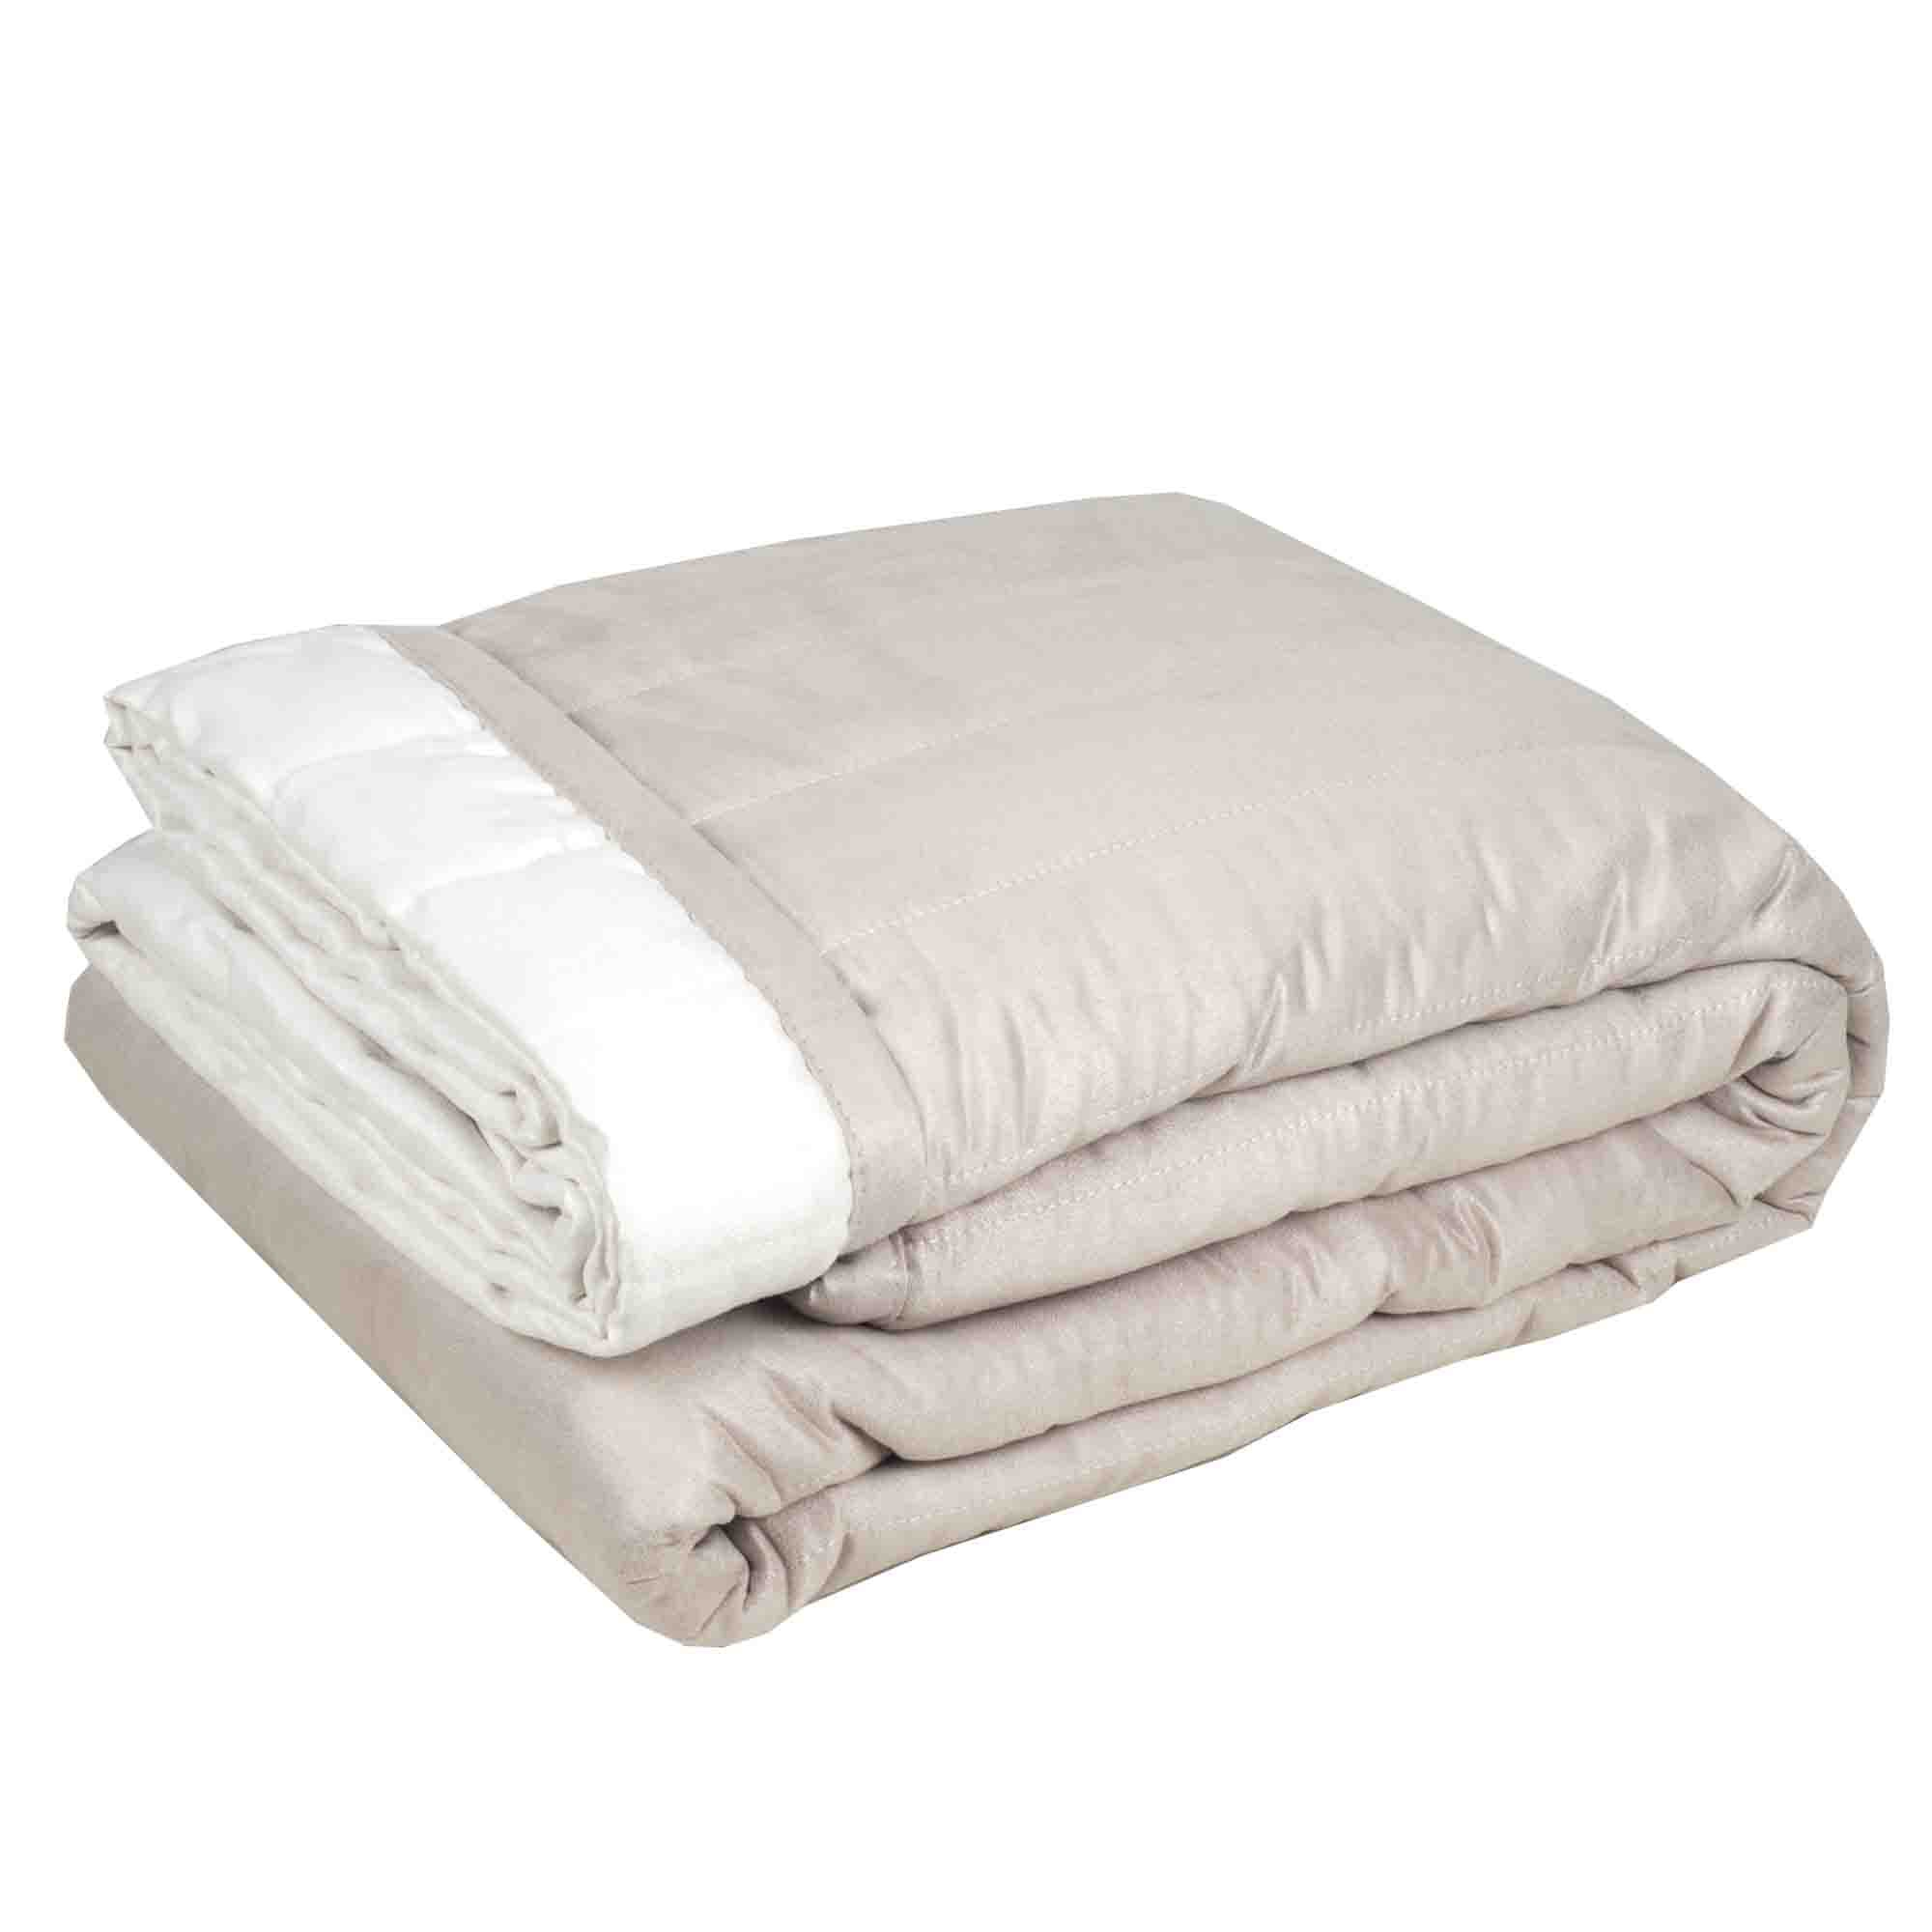 Quilted bedspread Montana natural   Madura